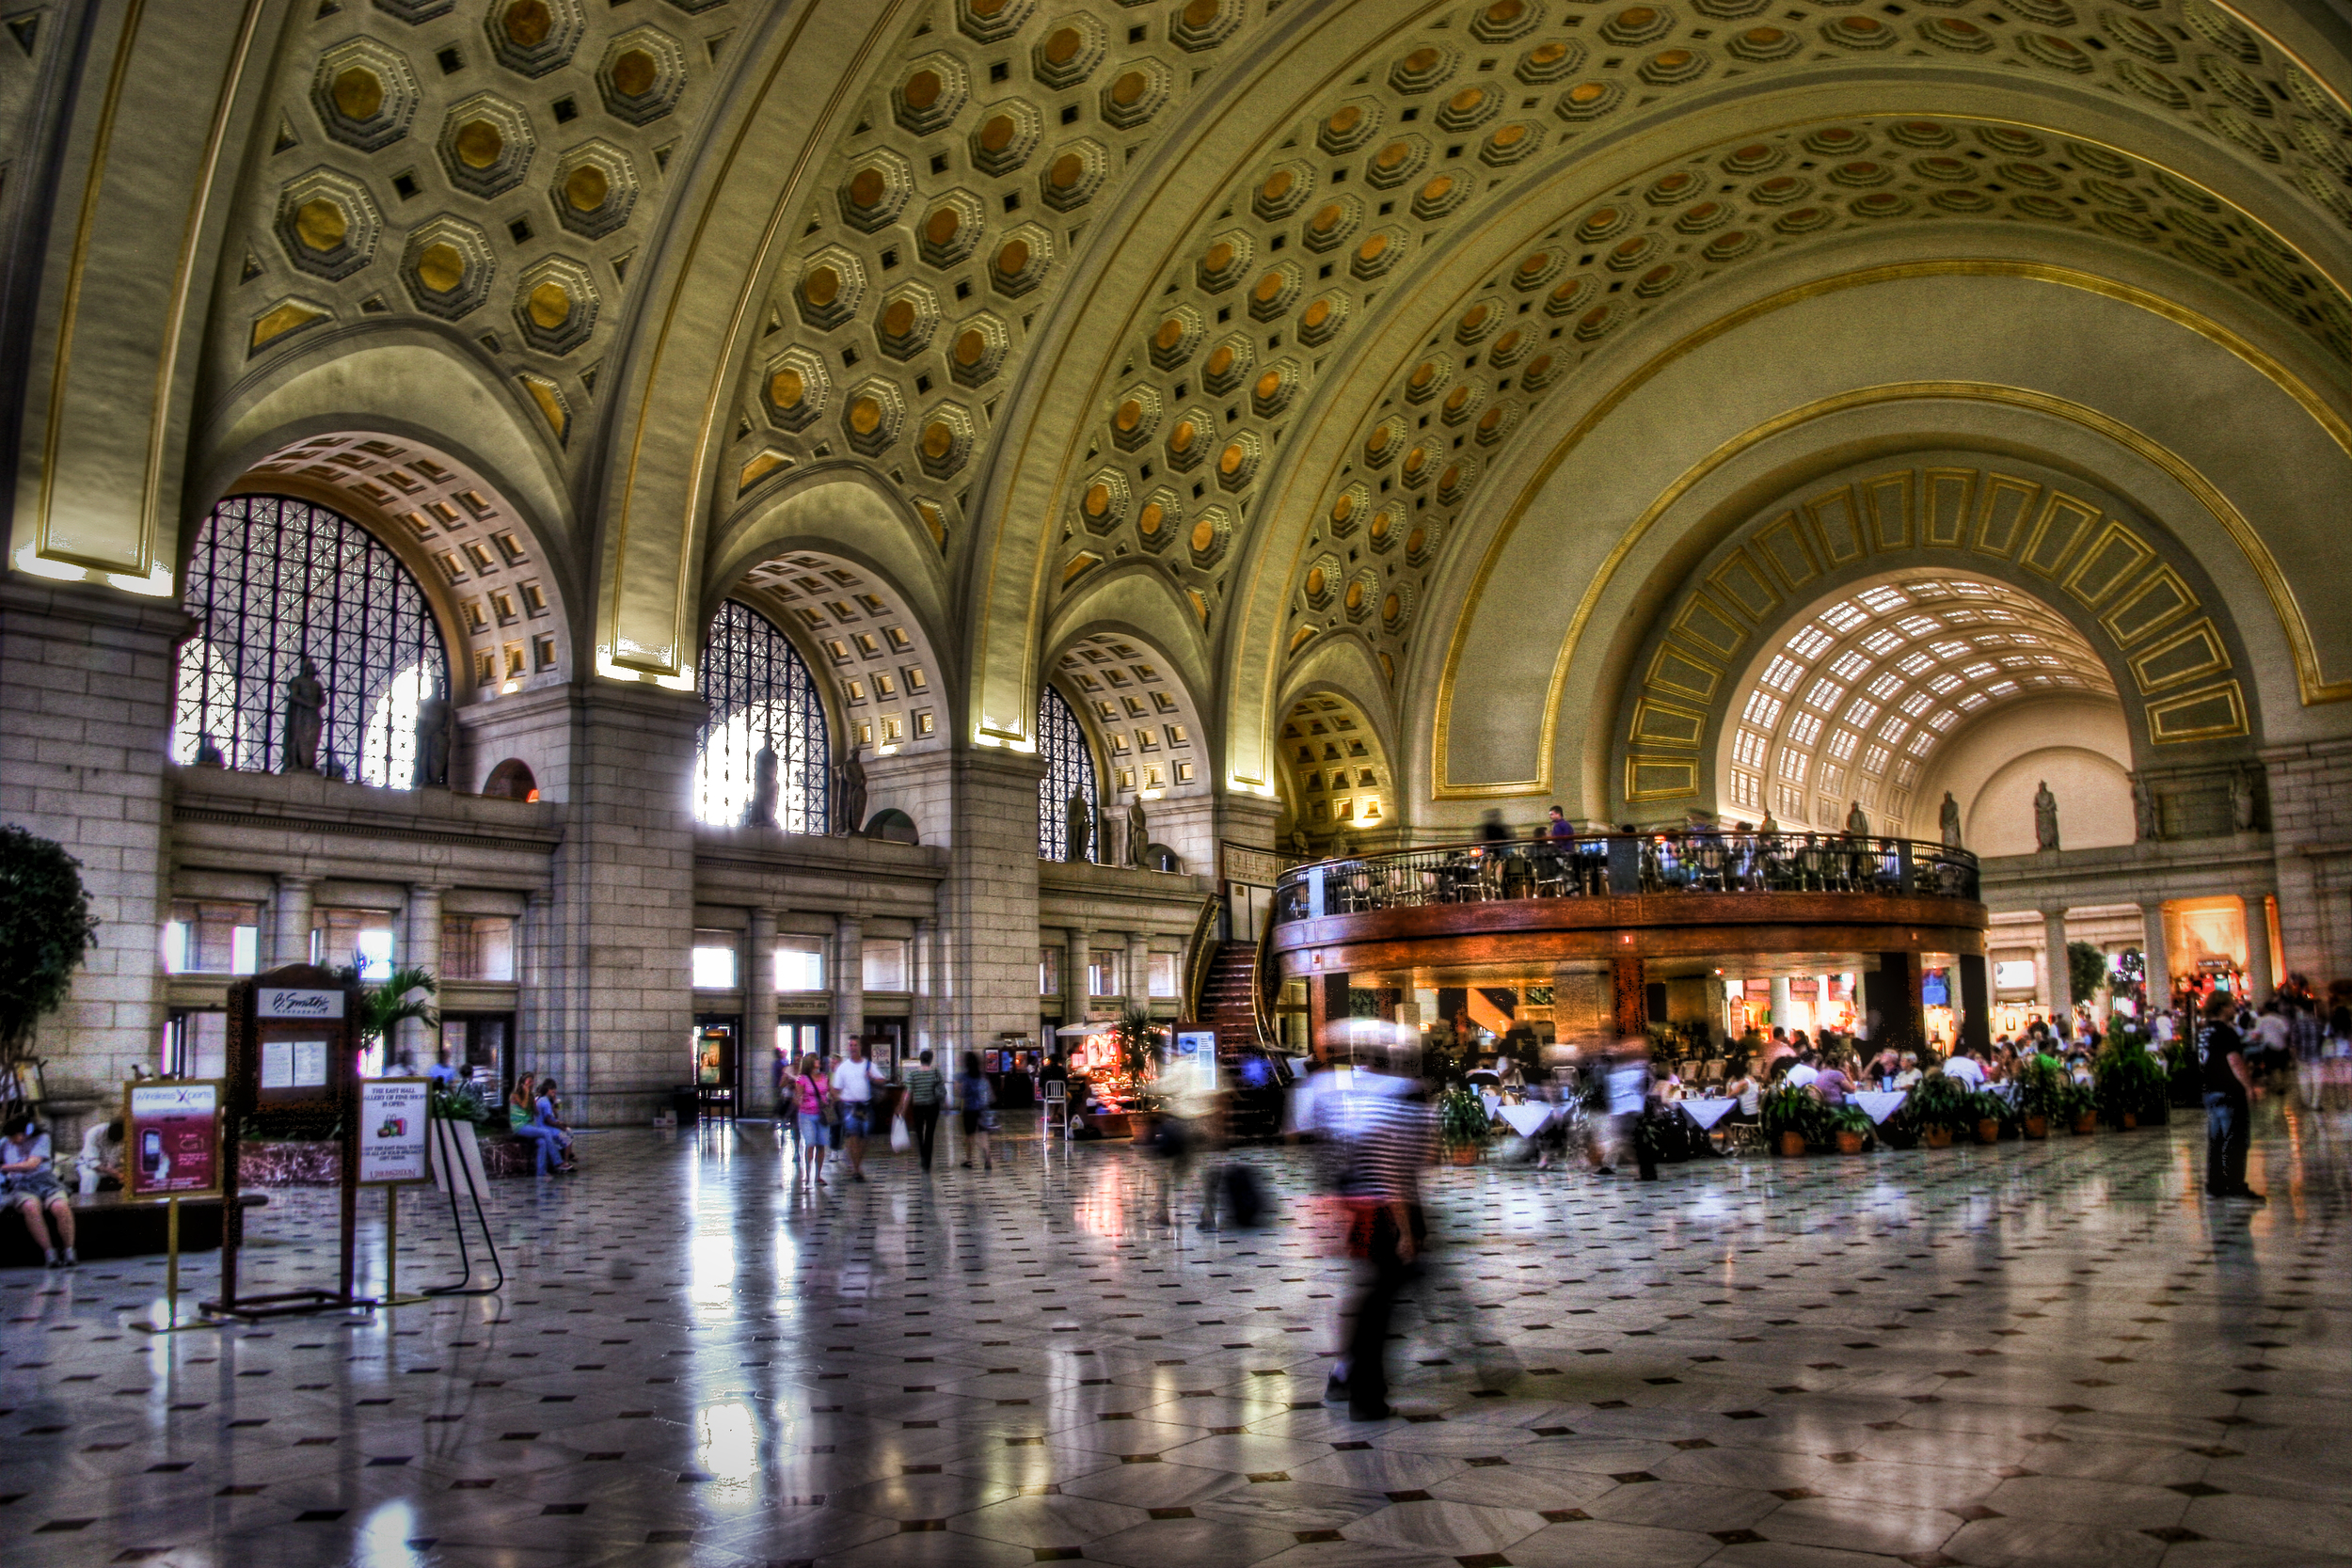 HUSTLE AND BUSTLE WITH CULTURE AT UNION STATION